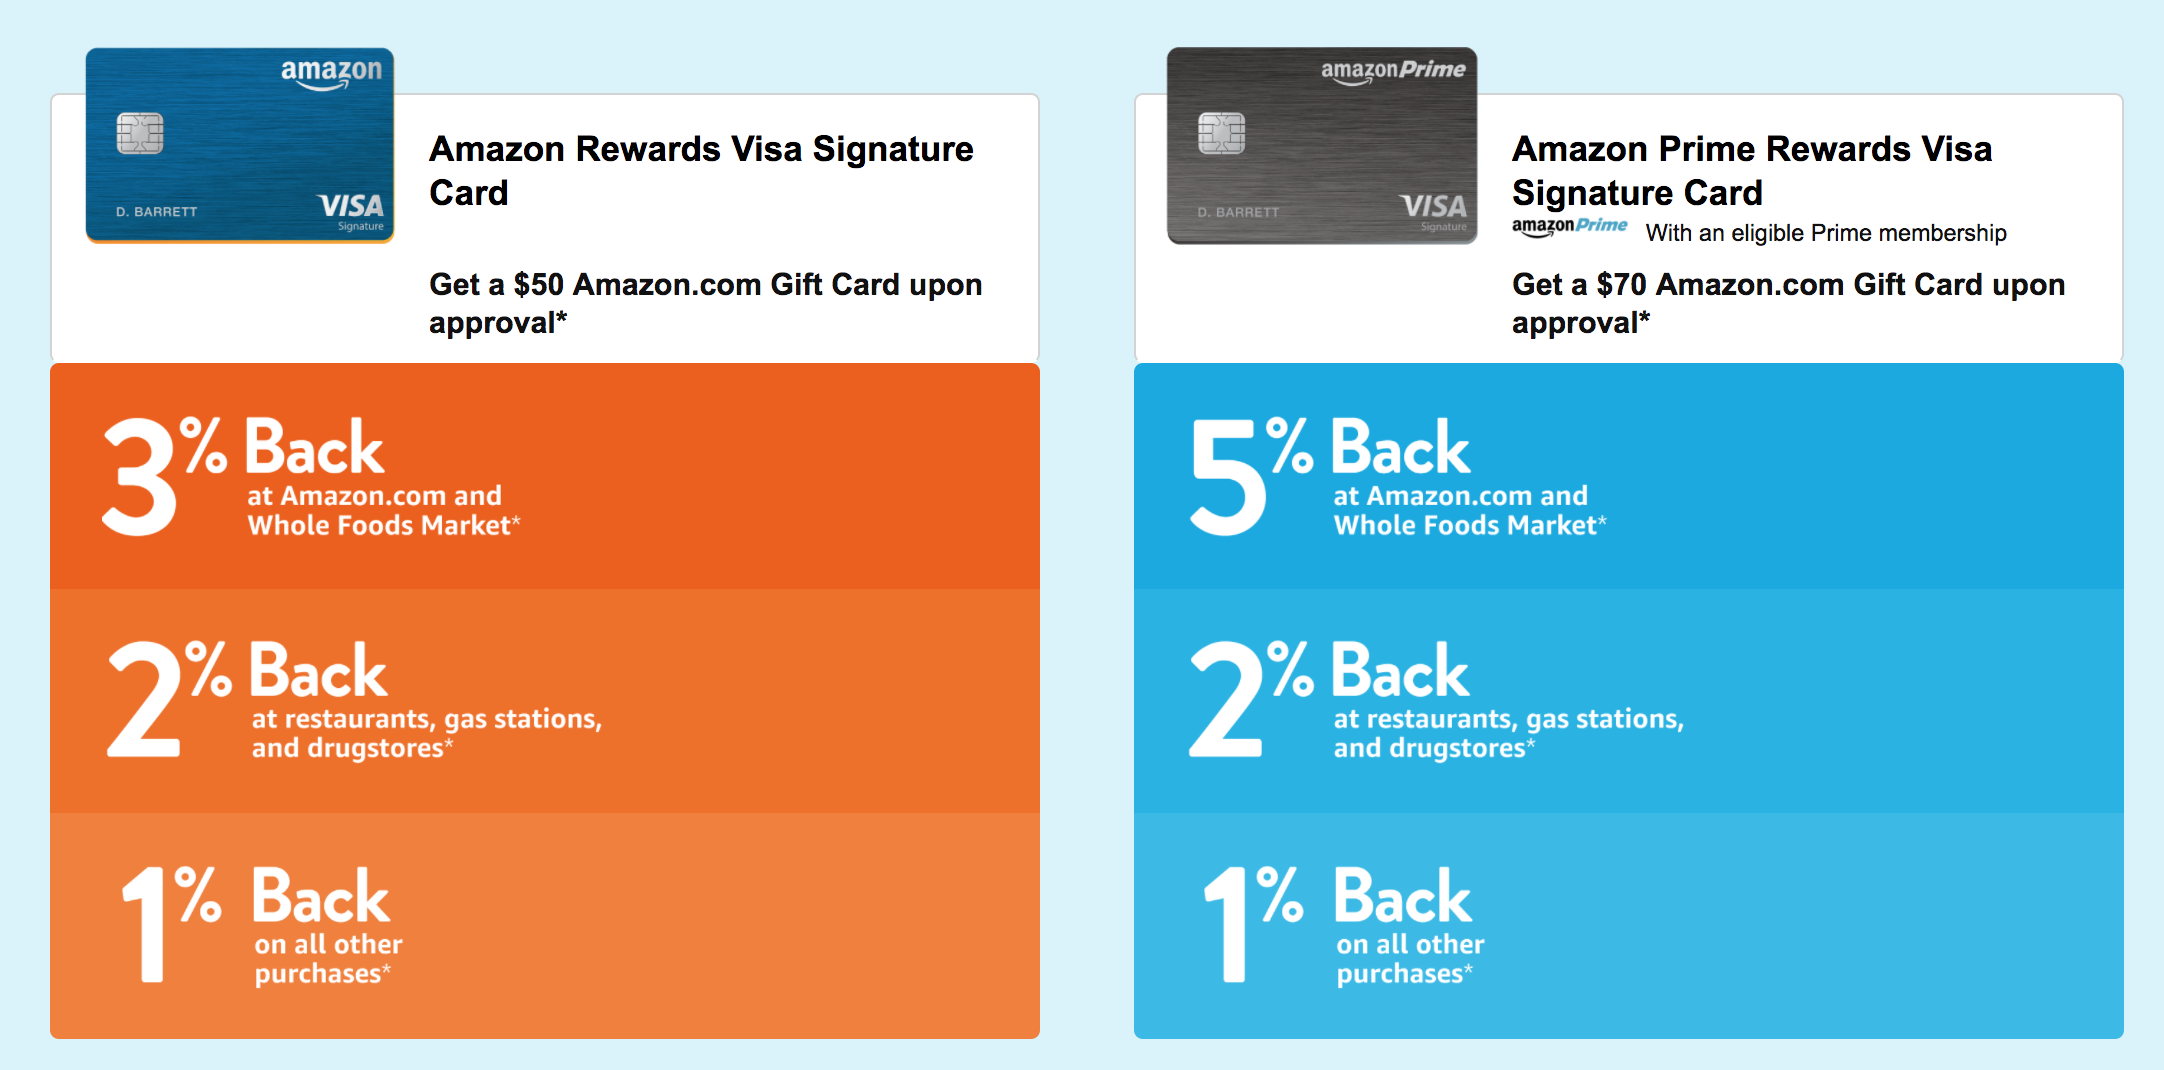 Amazon Credit Cards - Amazon Rewards vs The Prime Rewards Card [8]